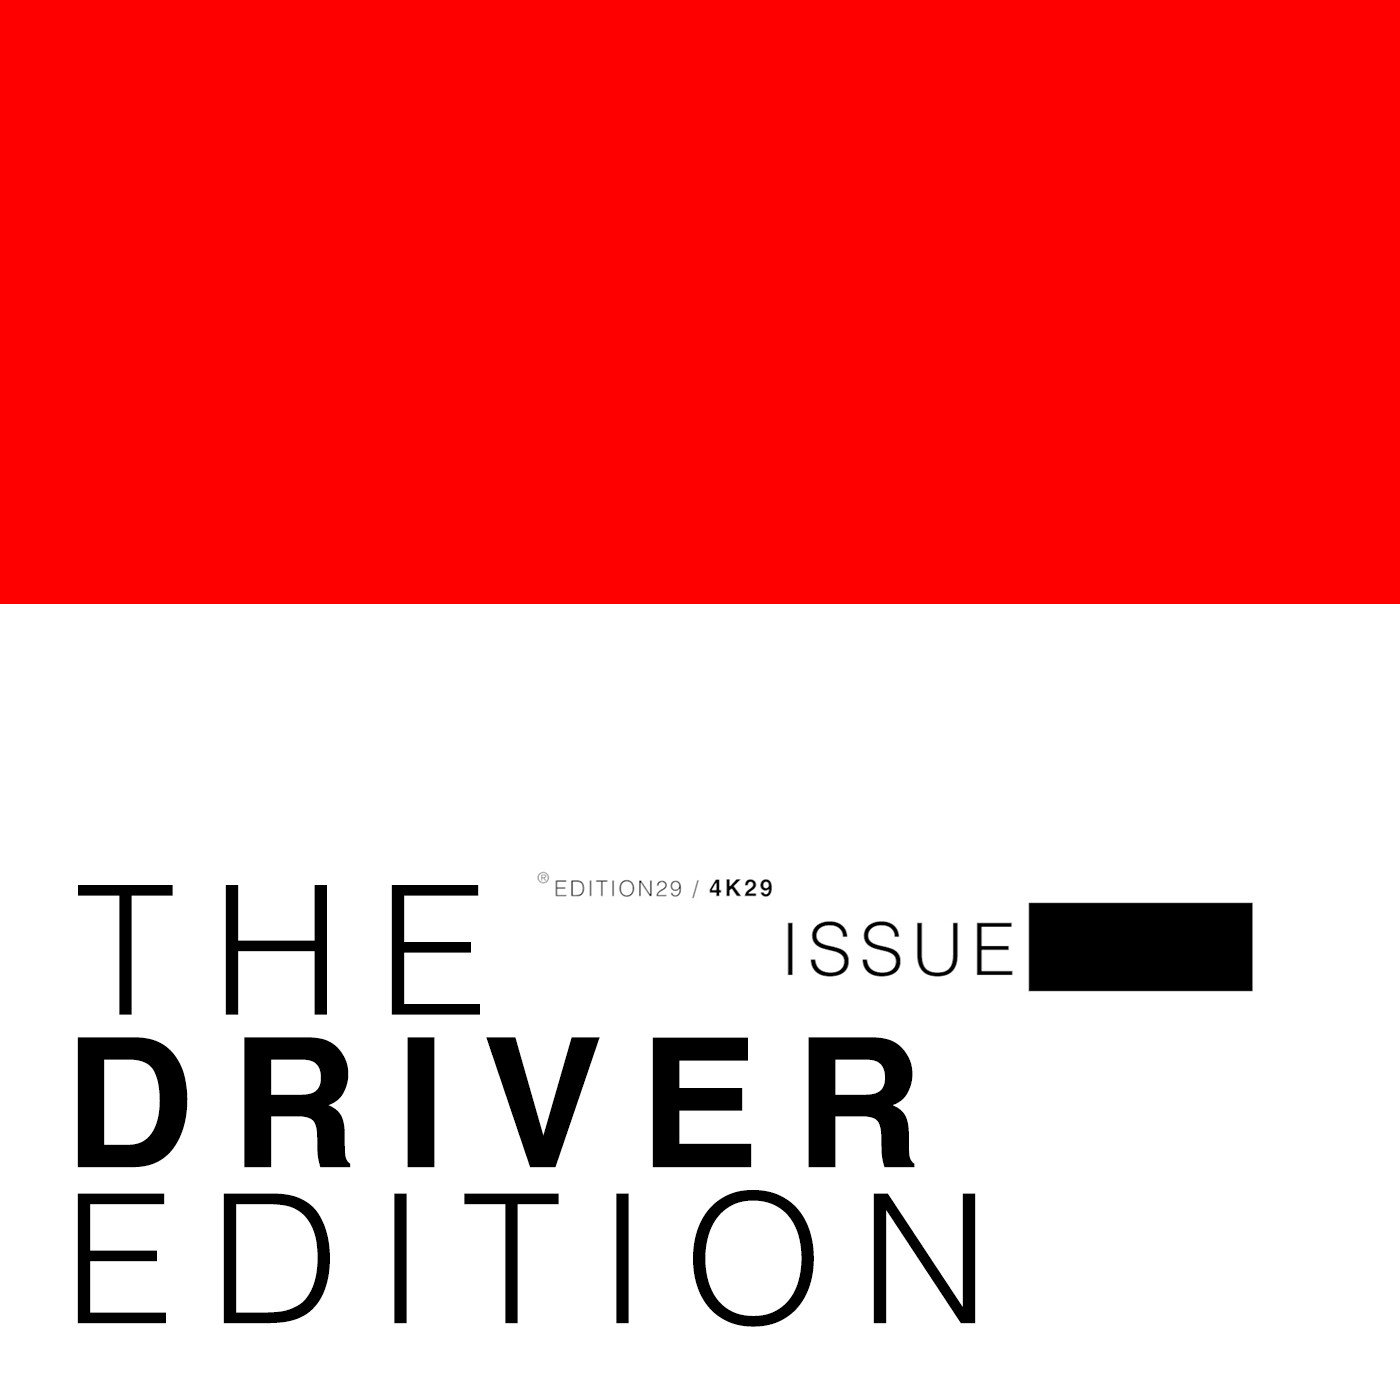 THE DRIVER EDITION